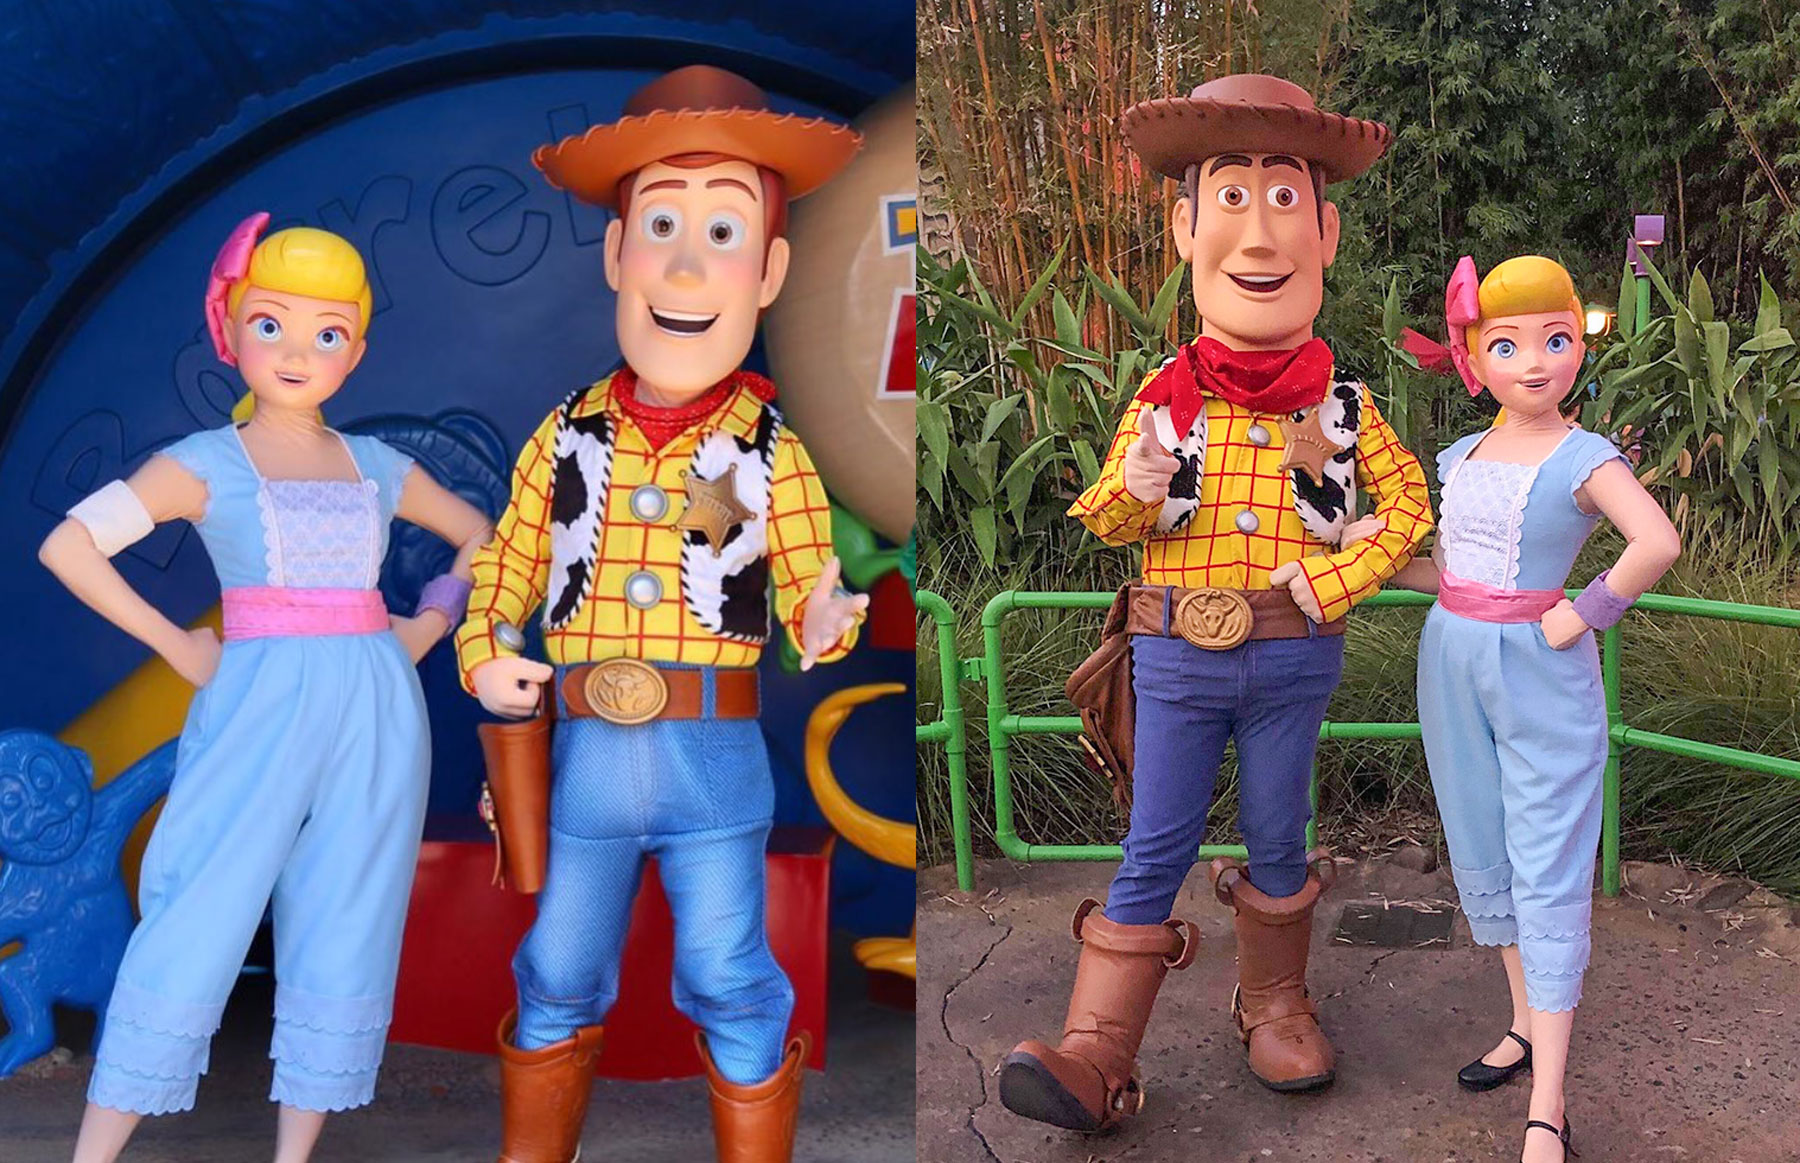 Toy Story character updates